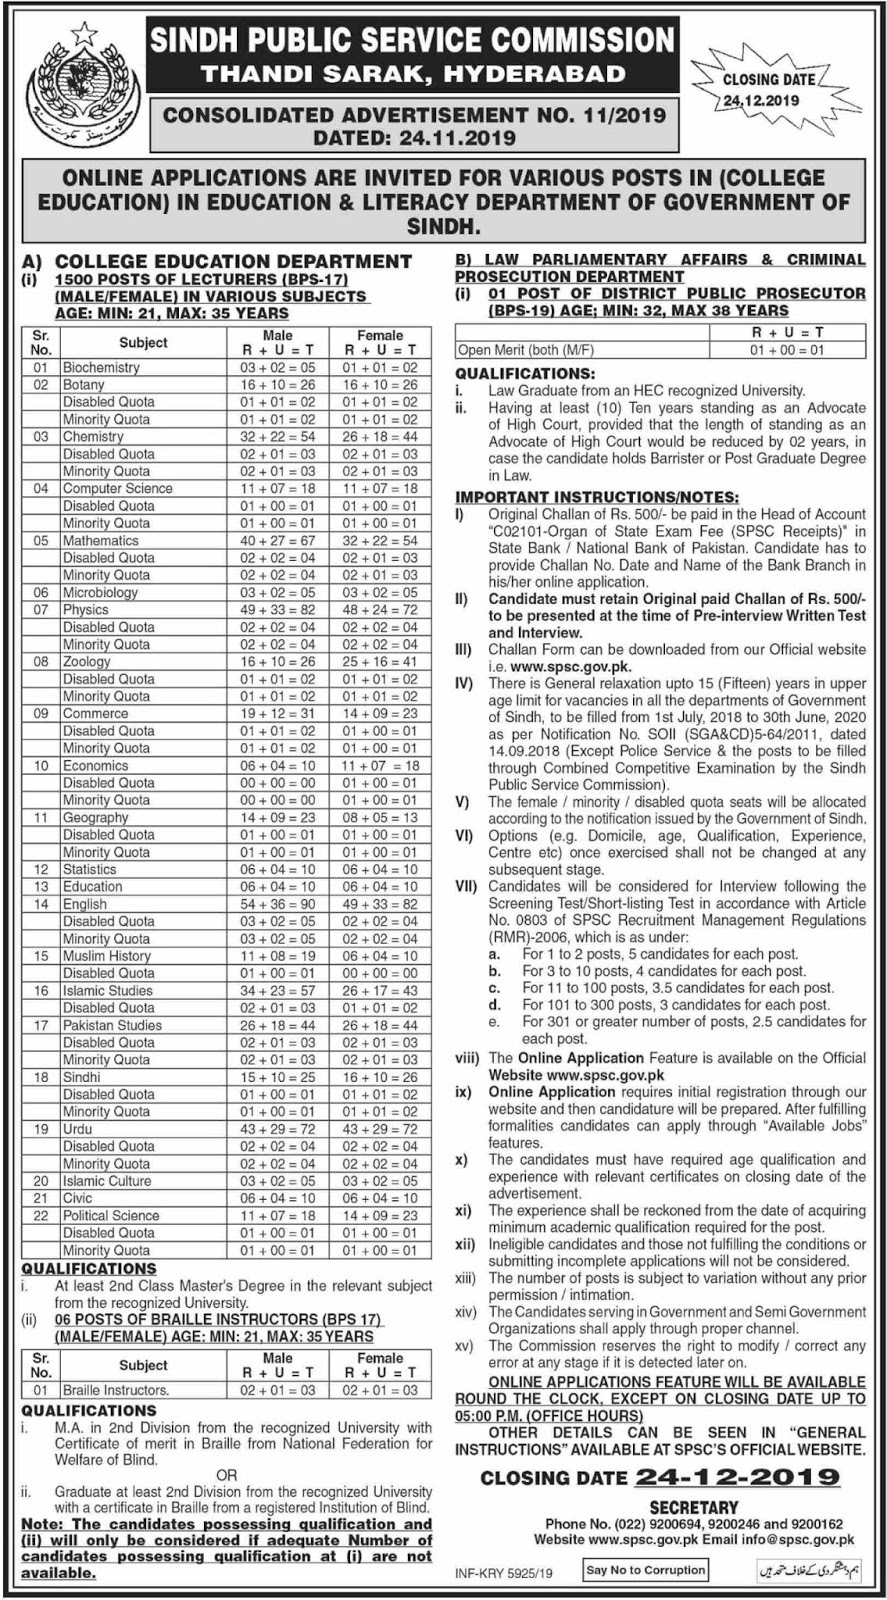 SPSC – SINDH PUBLIC SERVICE COMMISSION (AD NO. 11/2019) Latest Jobs Advertisement – Apply Online